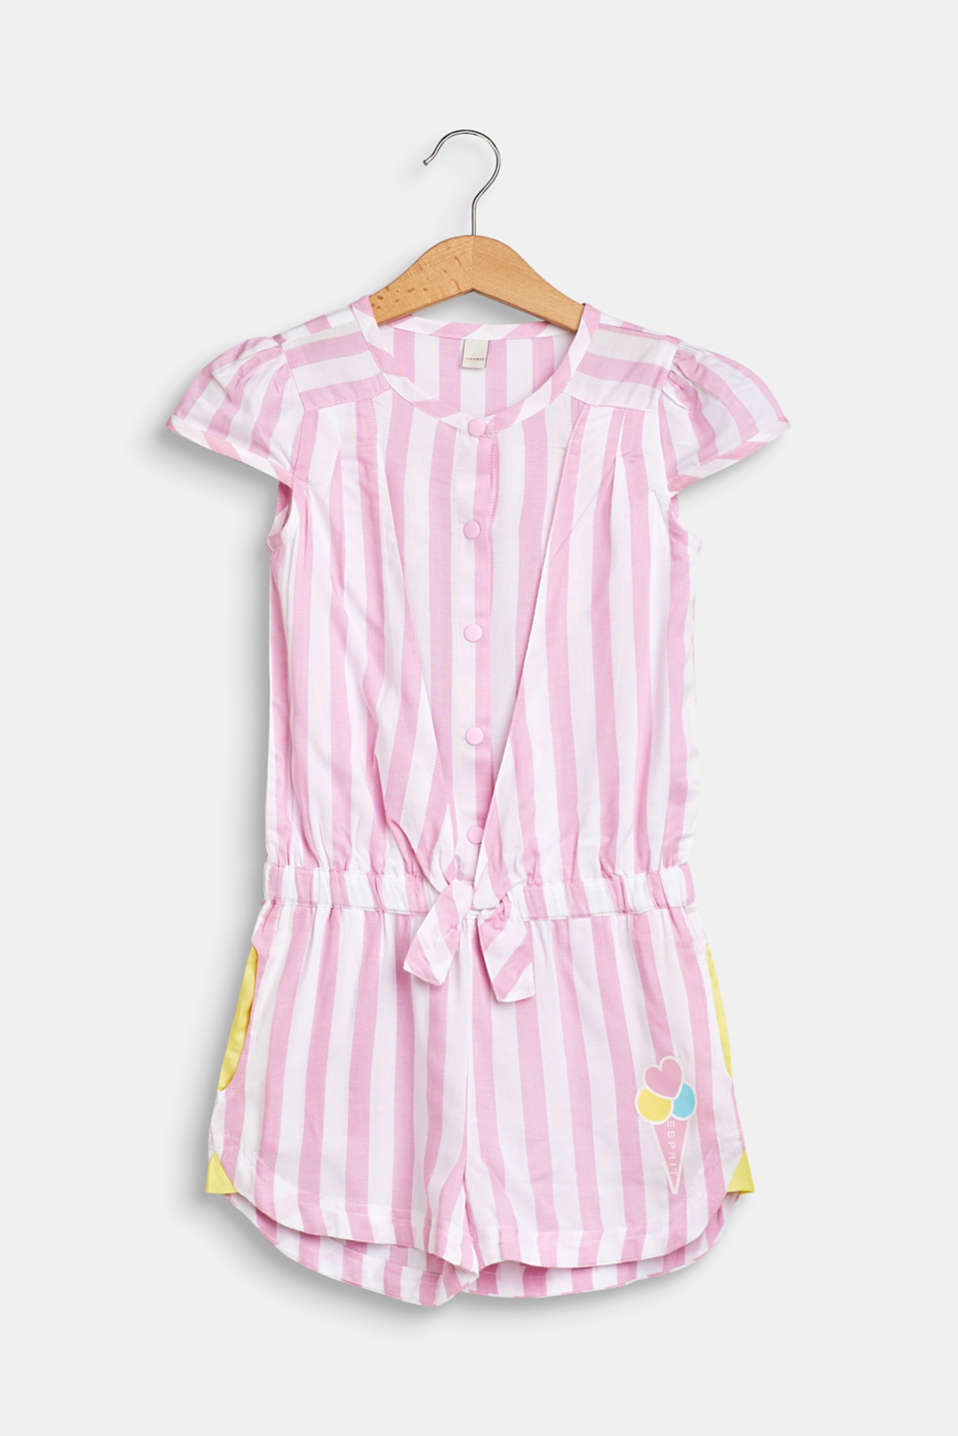 Esprit - Striped woven jumpsuit with an ice cream print